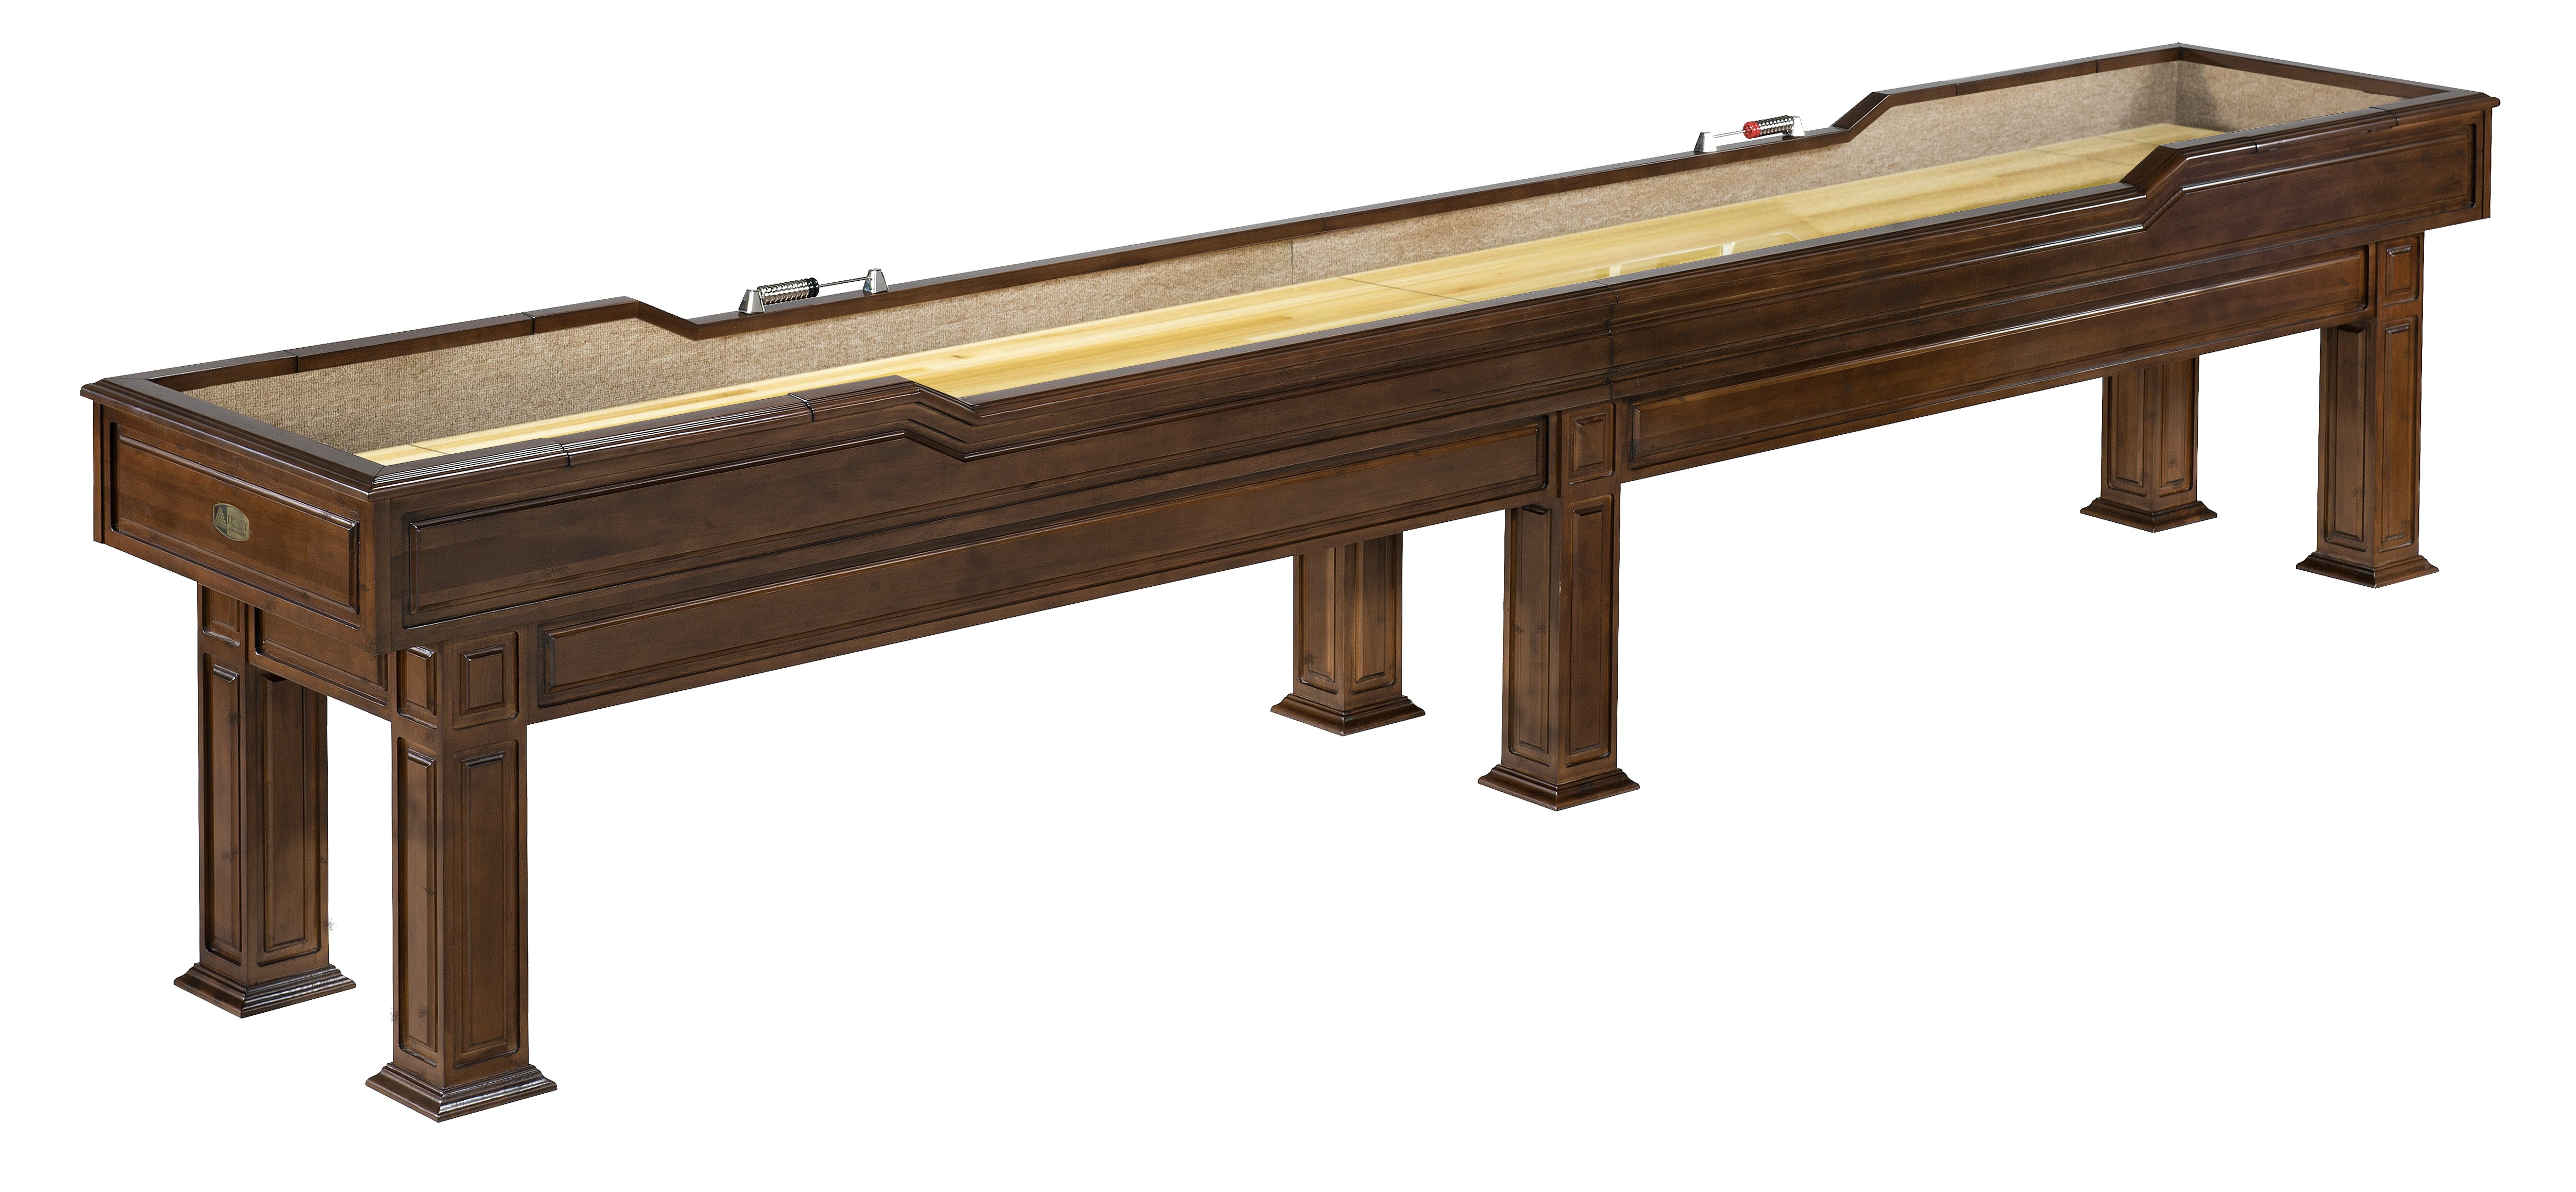 Table Shuffleboard Rules | How to Make A Shuffleboard Table | Shuffleboard Table